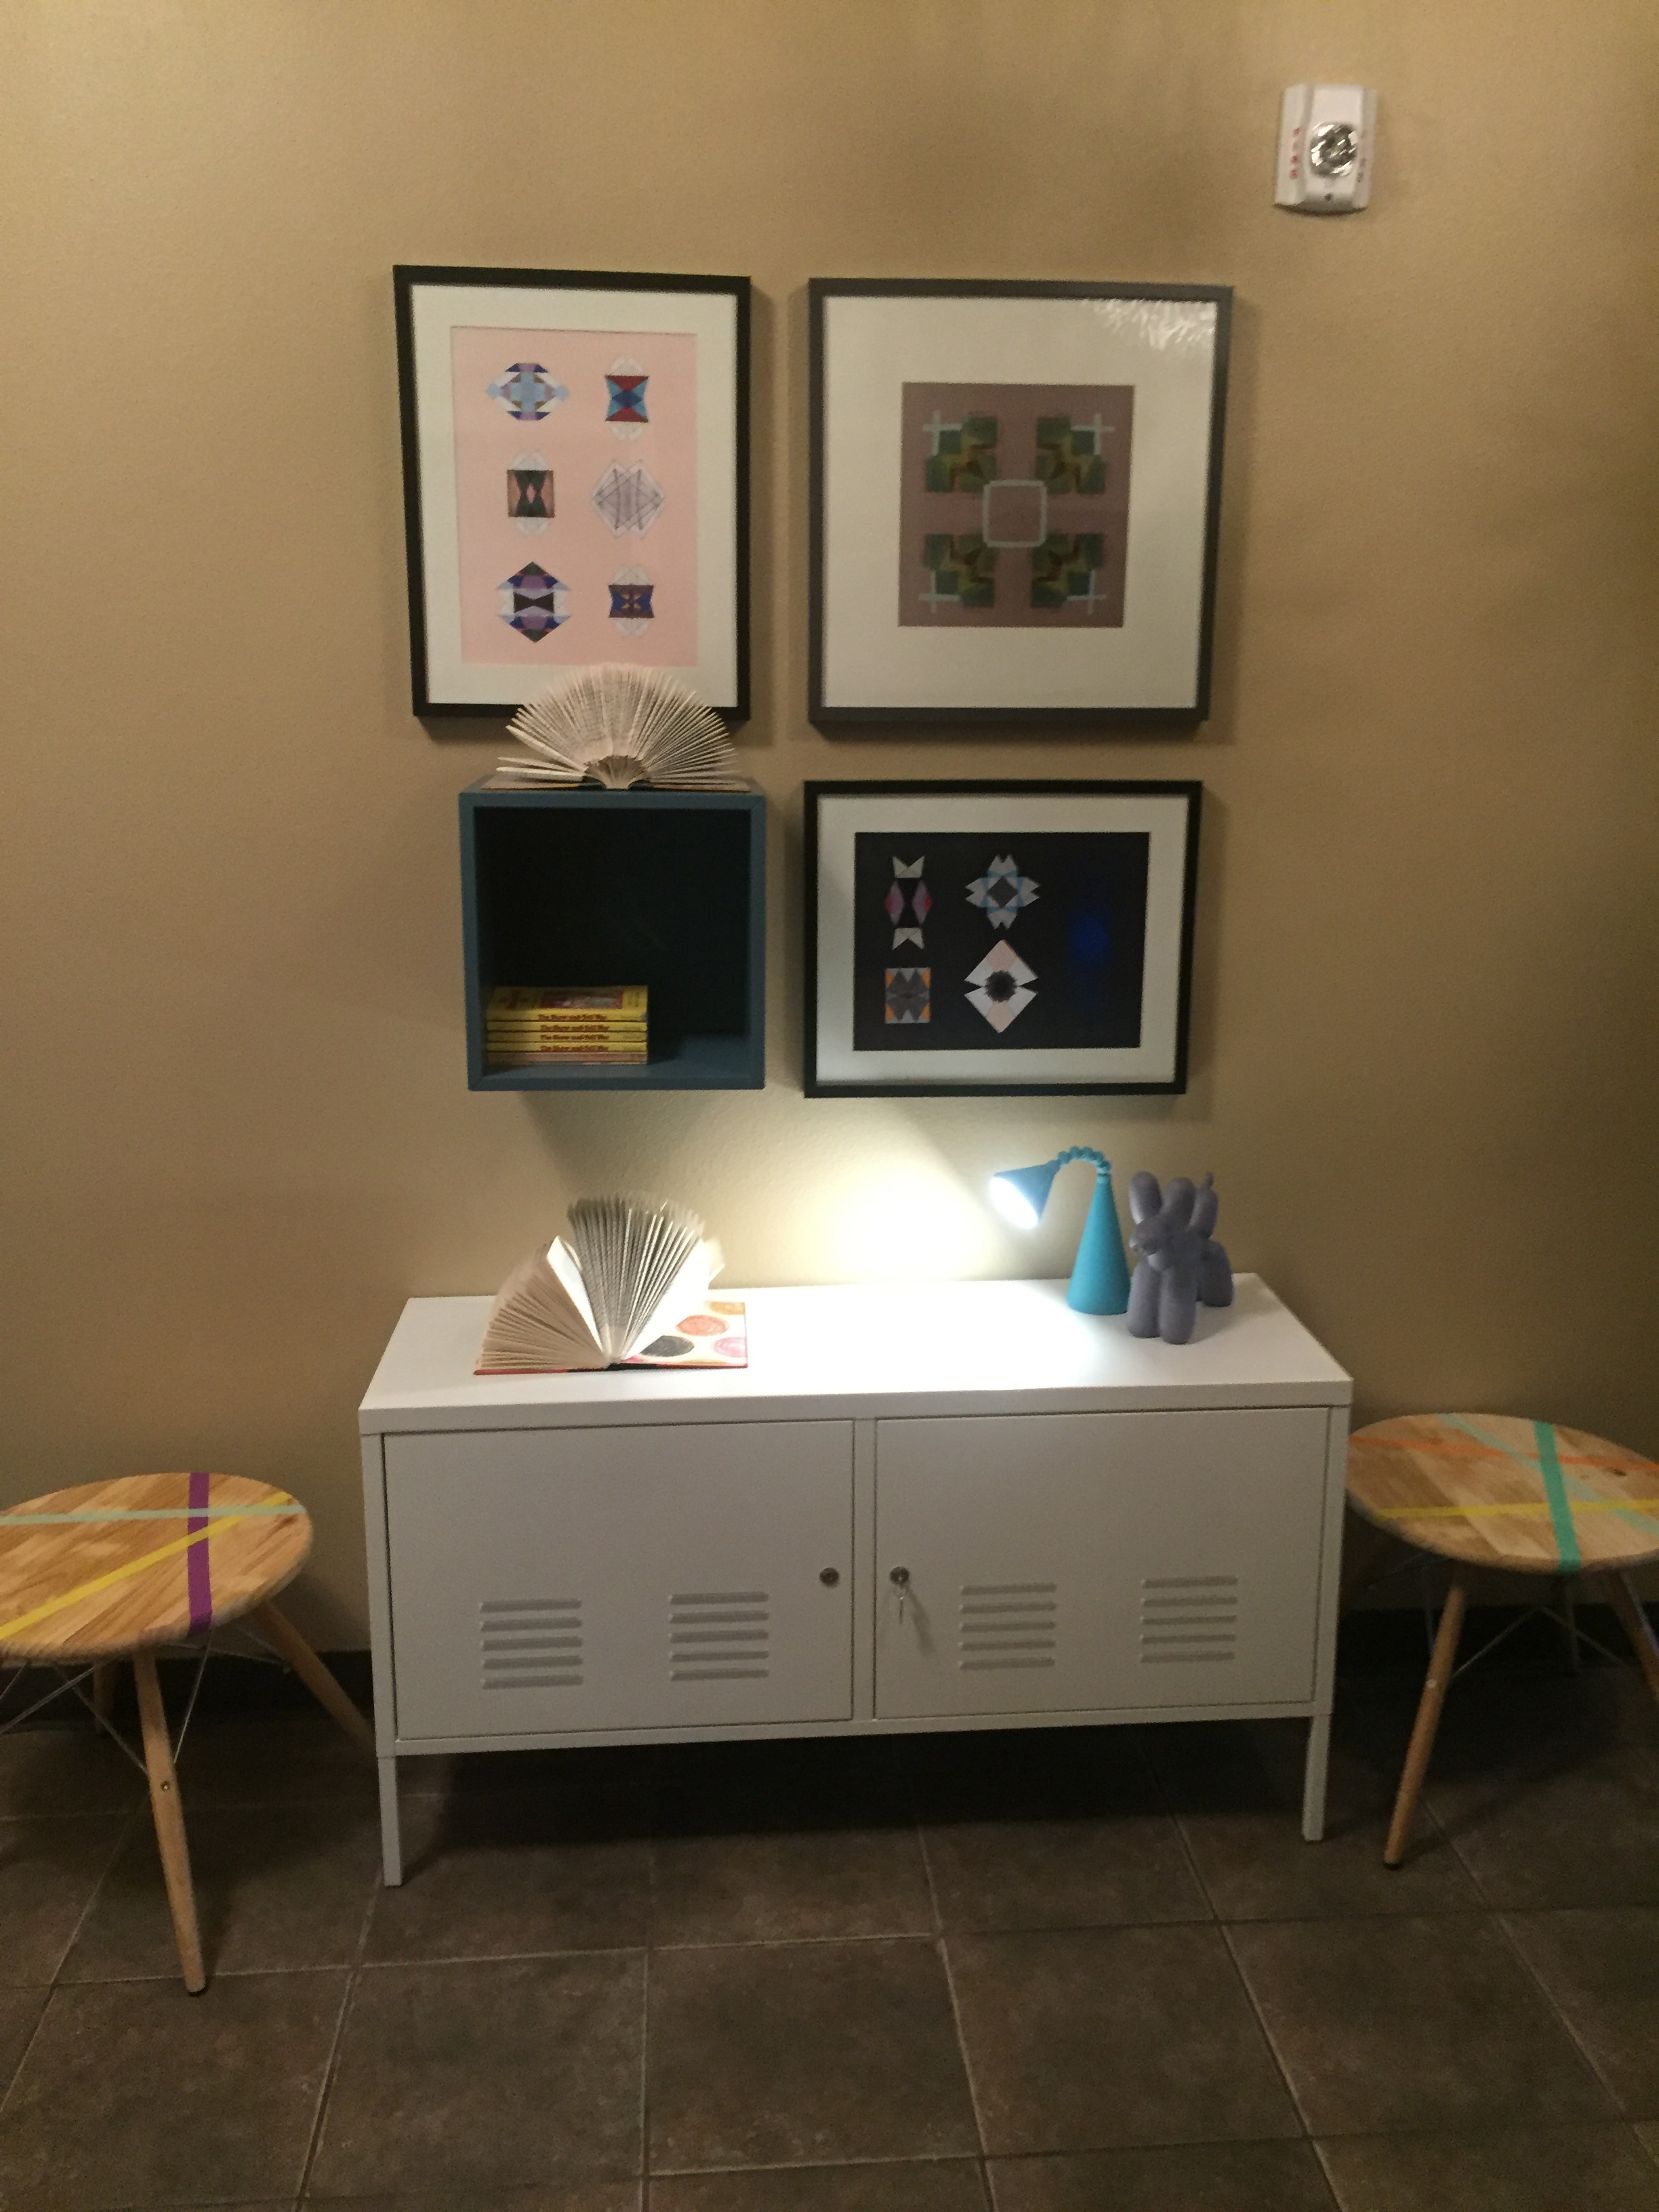 A nice little place to store necessities and display some art